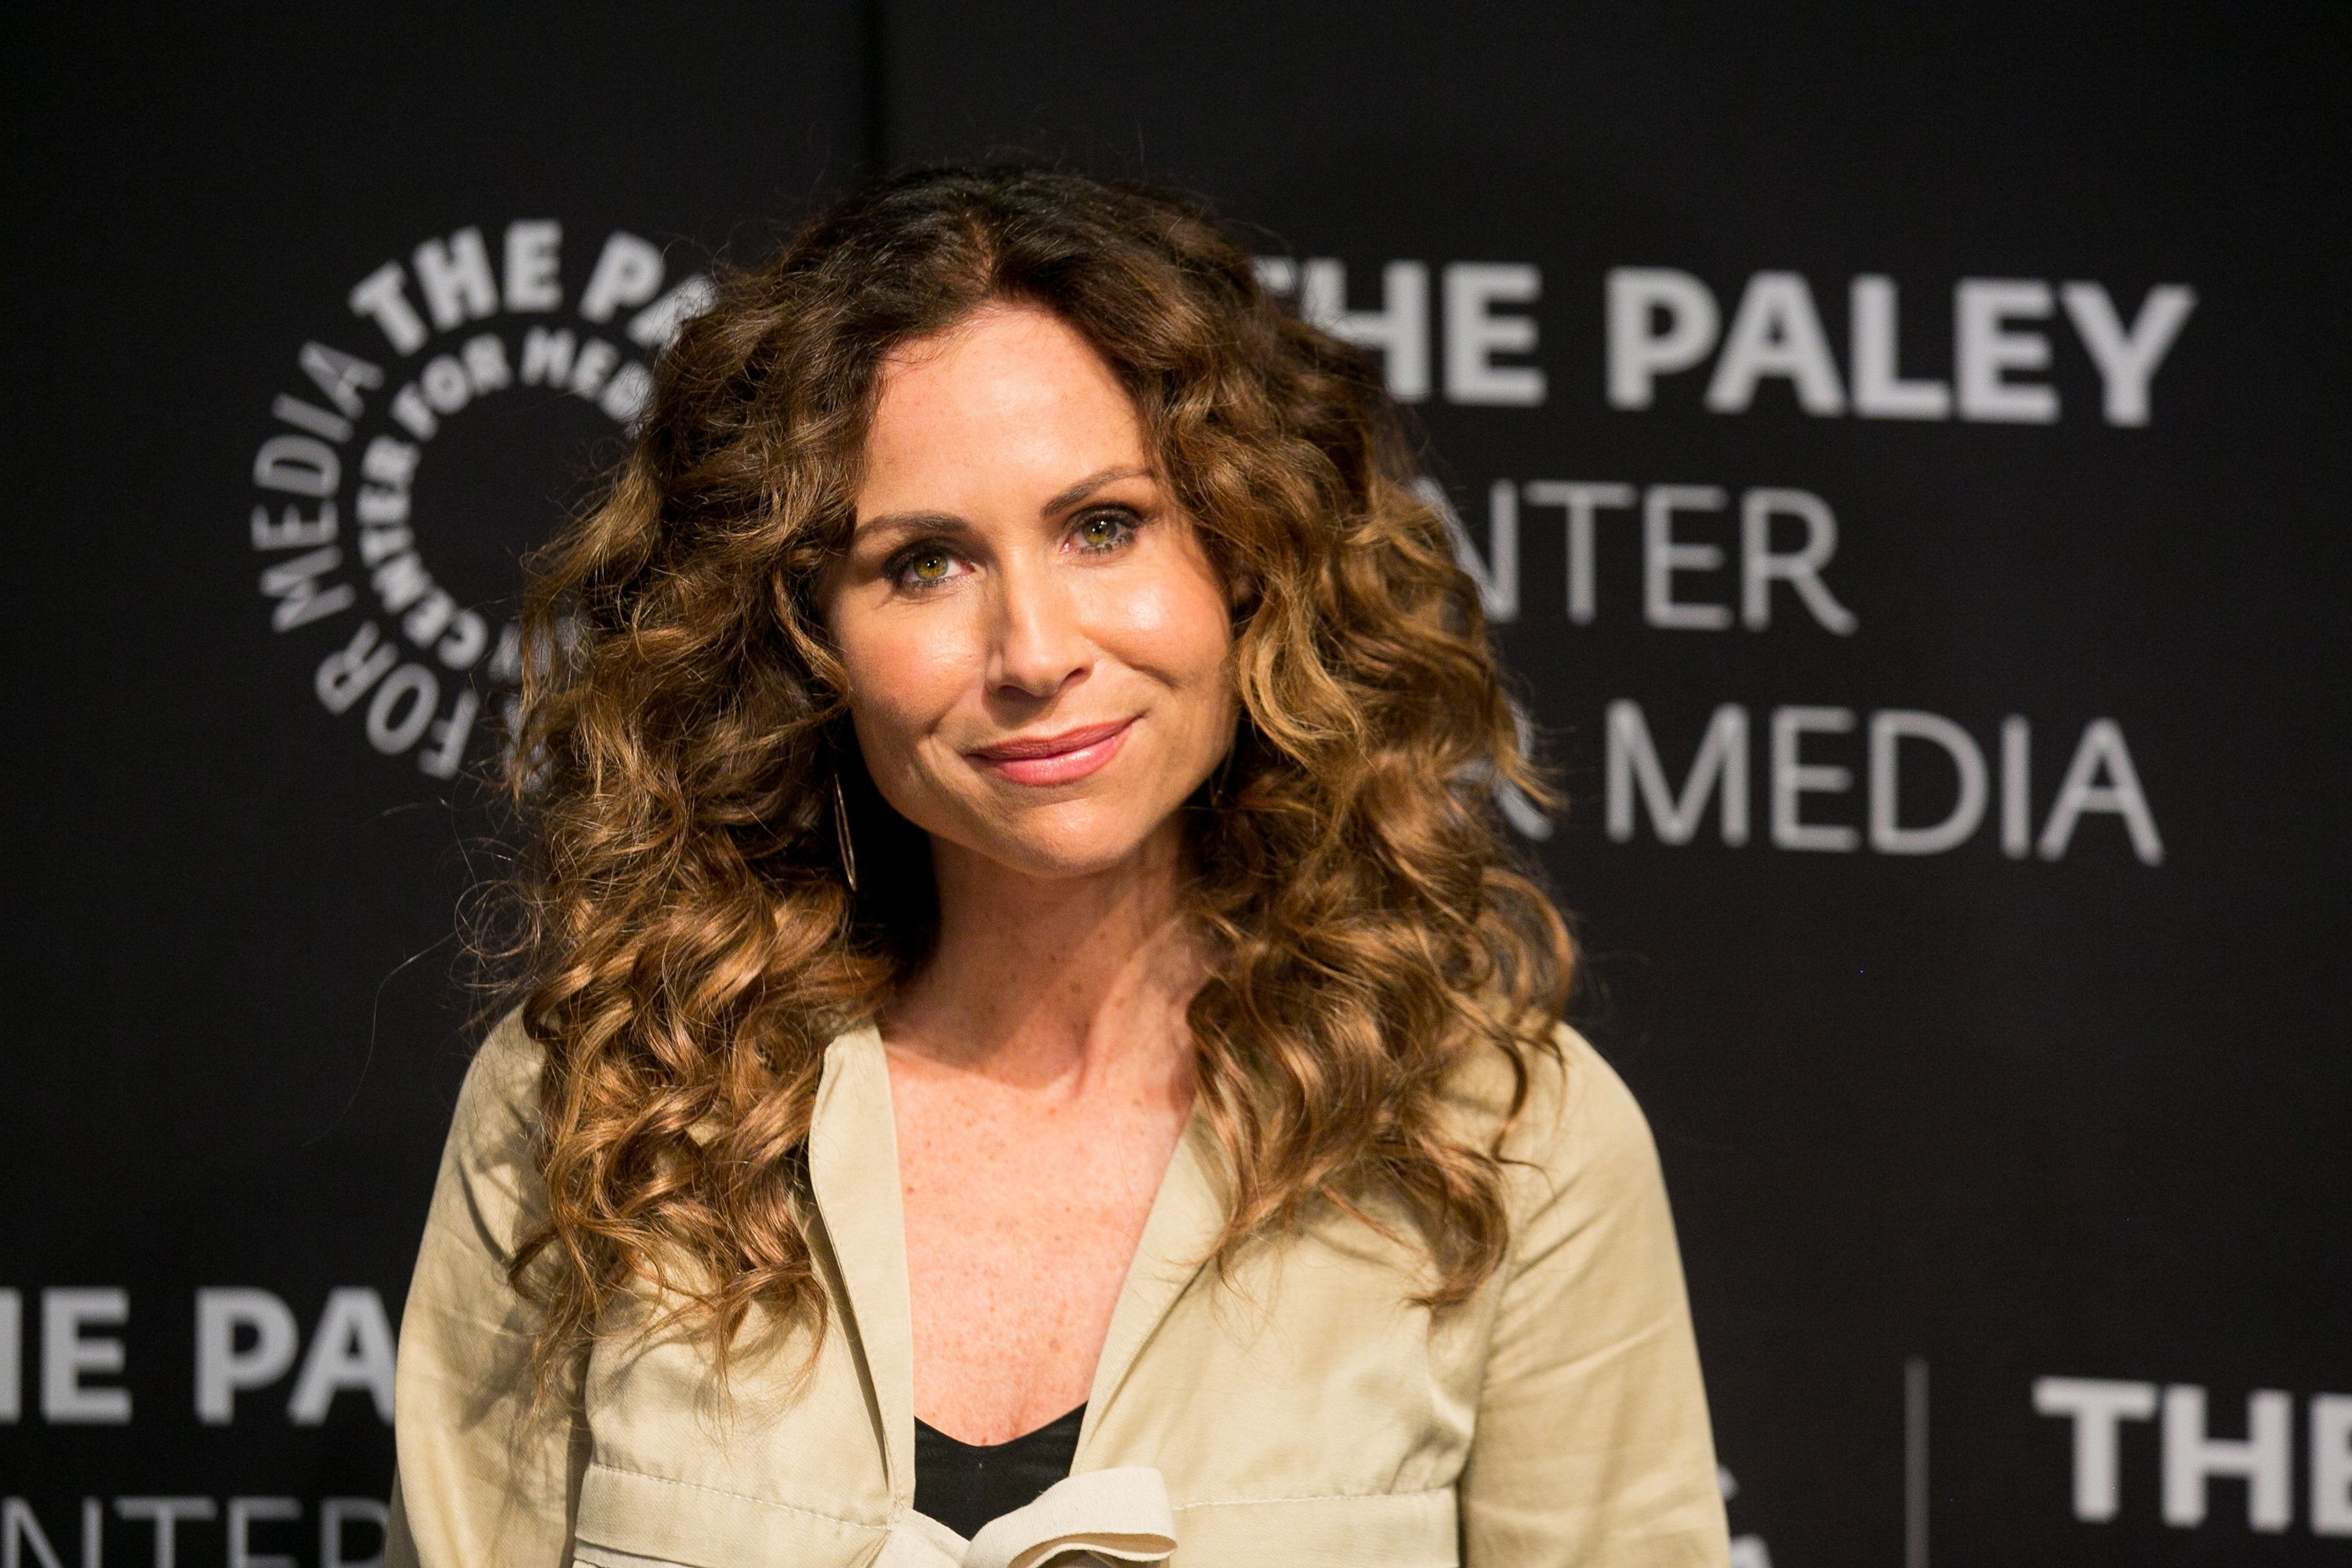 BEVERLY HILLS, CA - MAY 09:  Minnie Driver arrives for the 2017 PaleyLive LA Spring - An Evening With 'Speechless' Season at The Paley Center for Media on May 9, 2017 in Beverly Hills, California.  (Photo by Gabriel Olsen/FilmMagic)